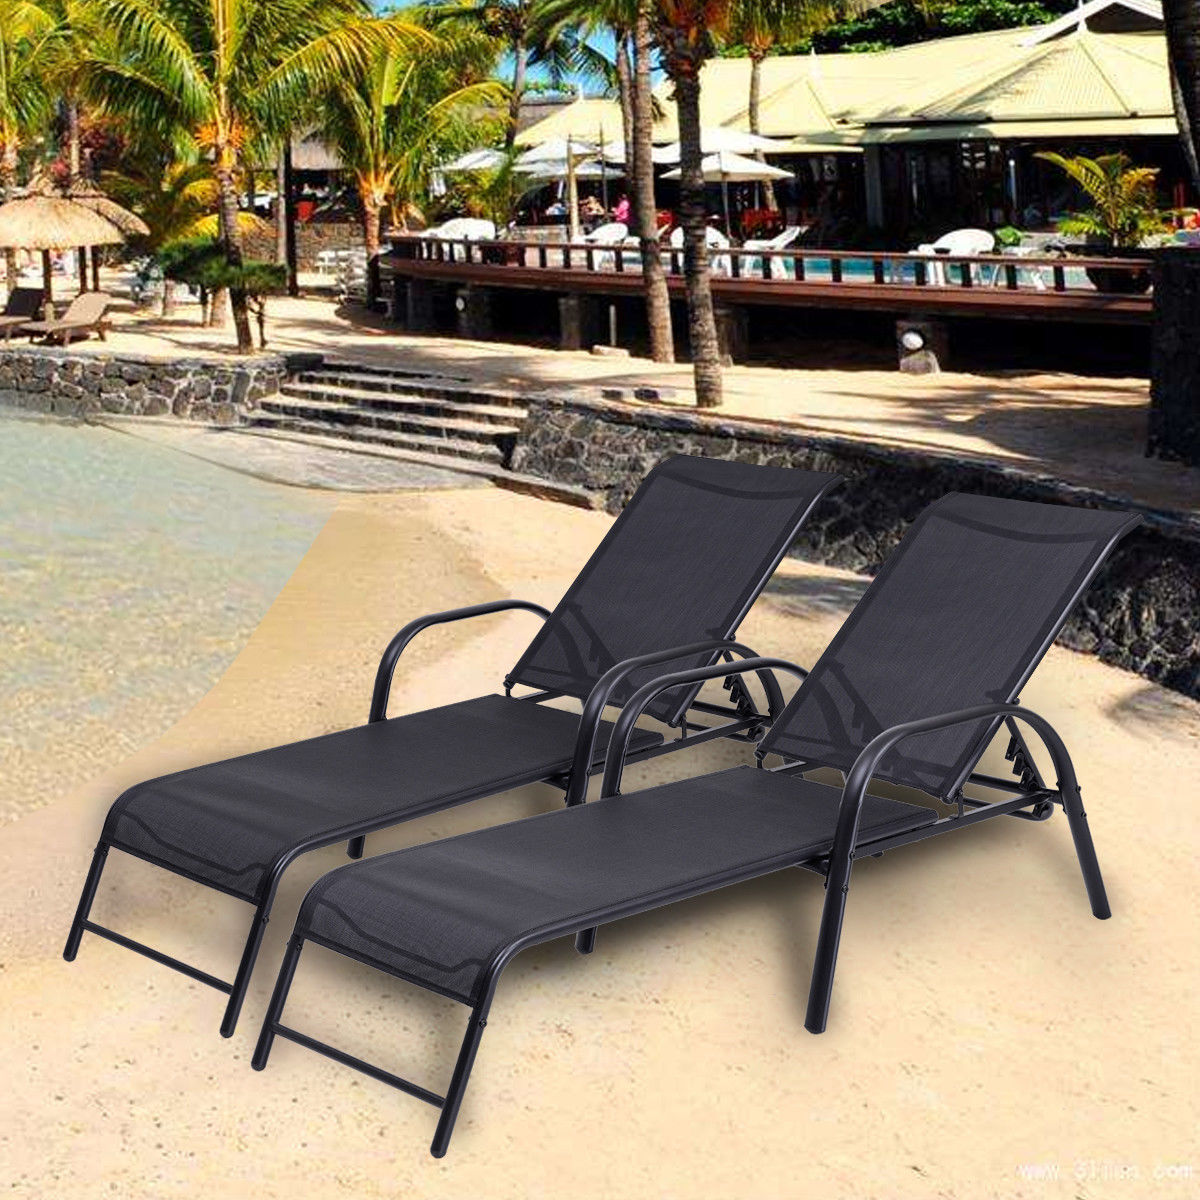 Pool Chaise Lounge Chairs Costway Set Of 2 Patio Lounge Chairs Sling Chaise Lounges Recliner Adjustable Back